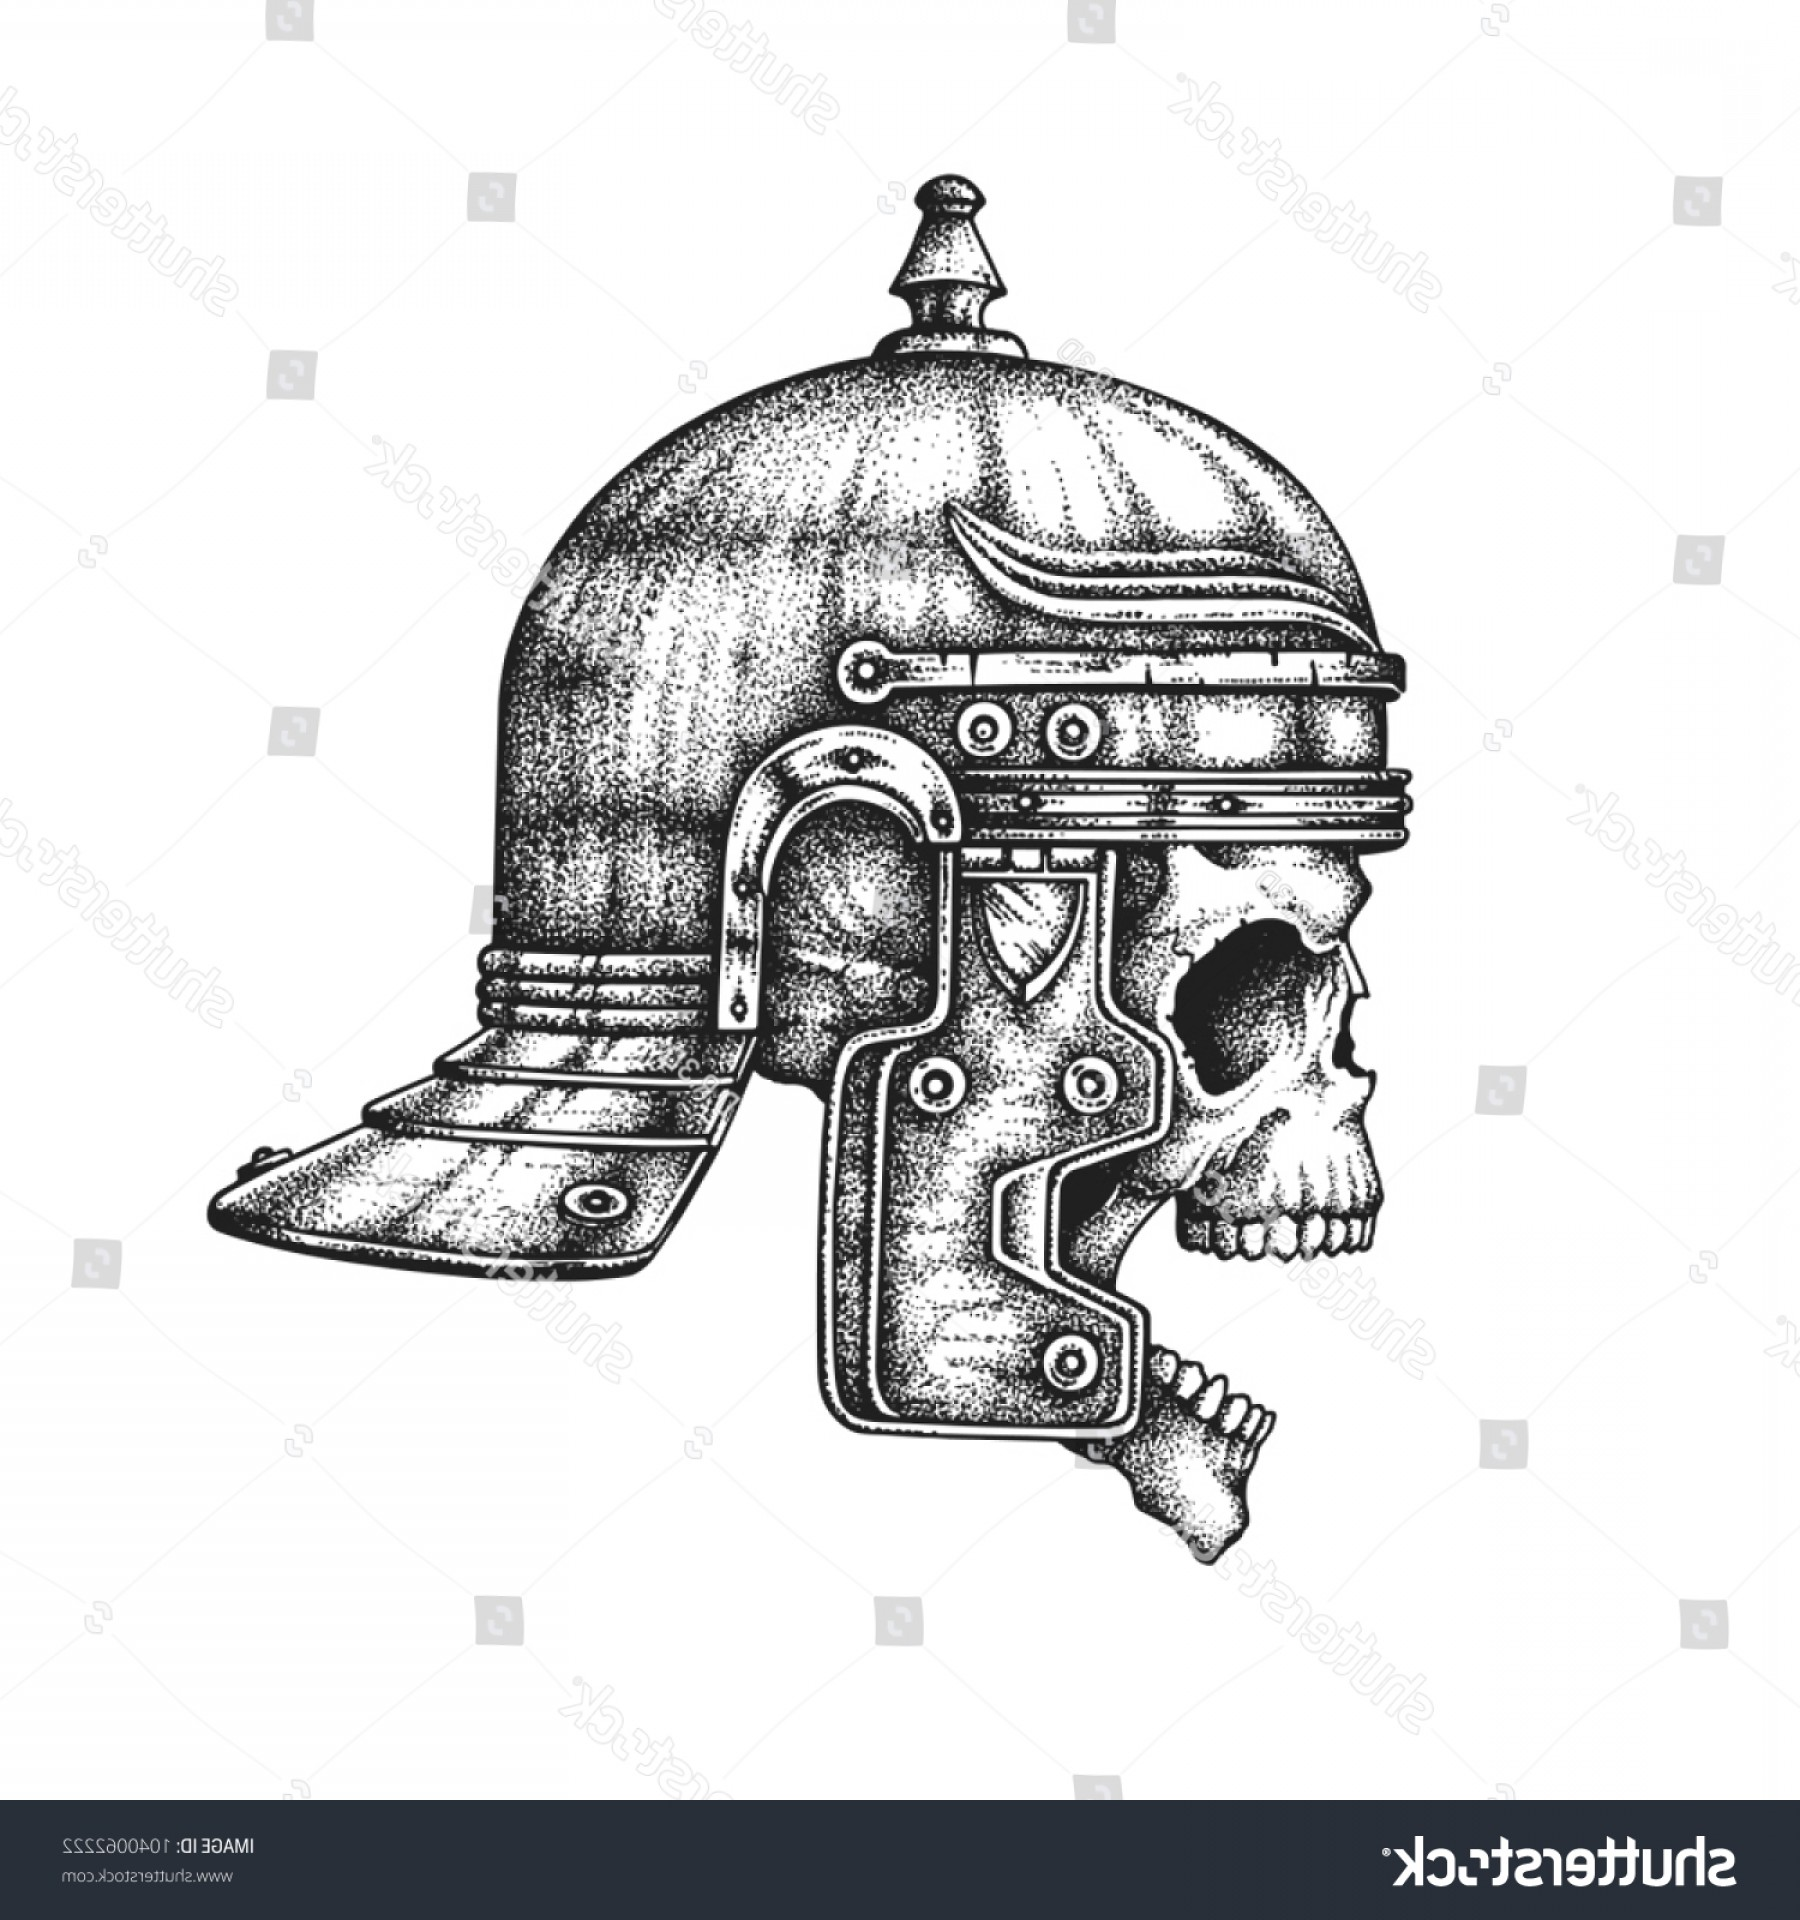 Boba Fett Vector Black And White: Roman Empire Legionary Skull Imperial Gallic